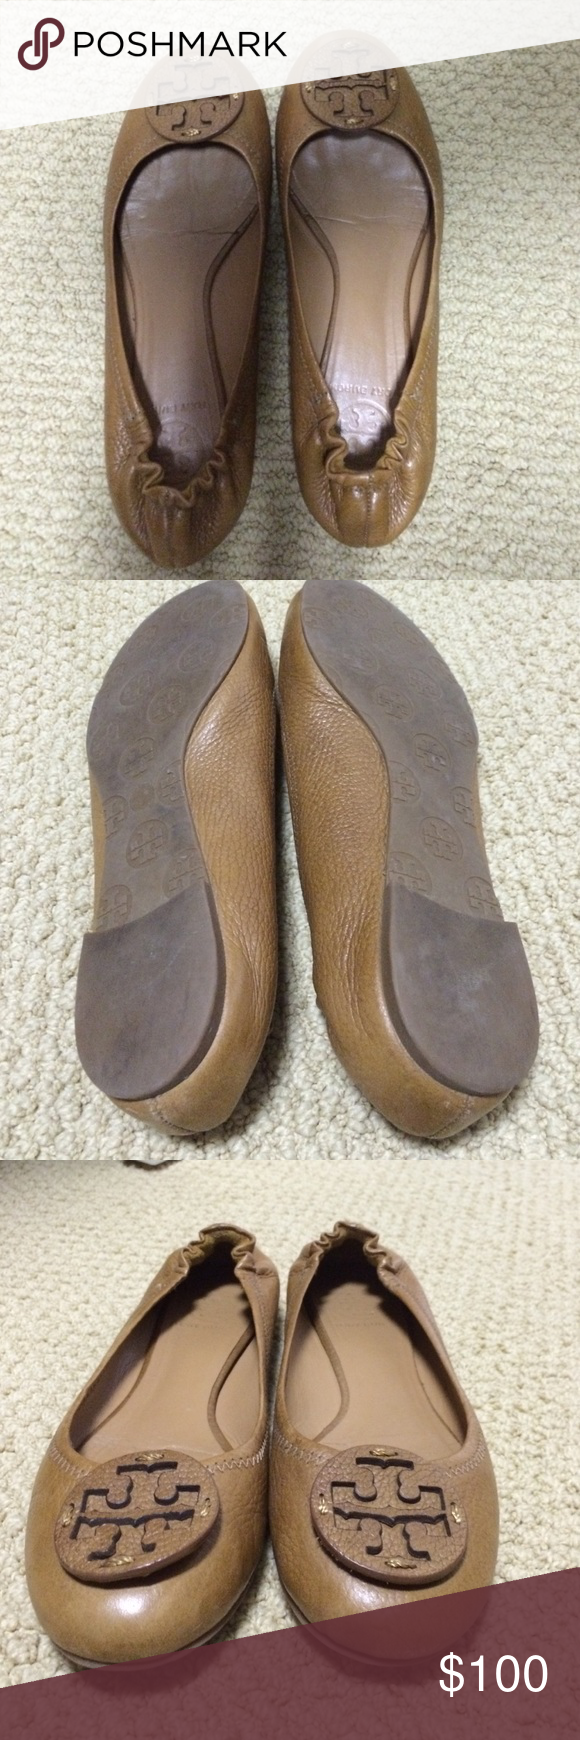 e2141b8050ebc0 Tort burch flats tan Like new! Size too small worn only a few times